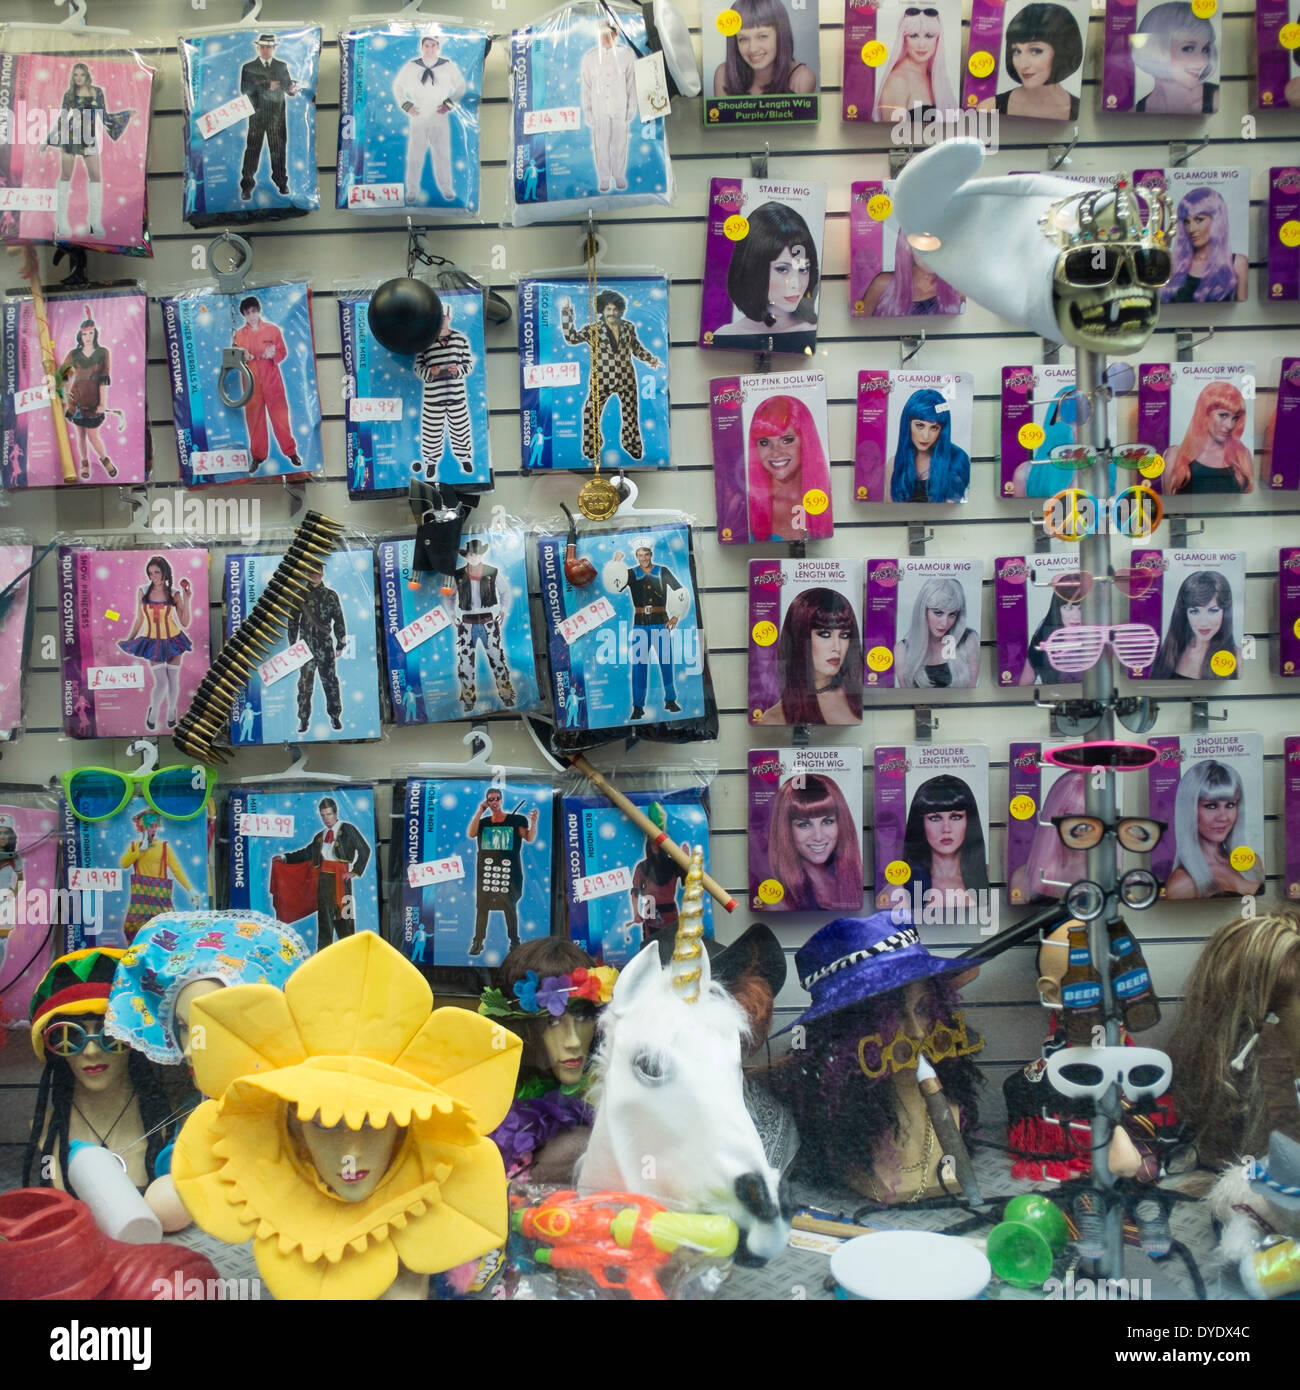 Joke shop window, High Street Arcade, le centre-ville de Cardiff Wales UK Photo Stock